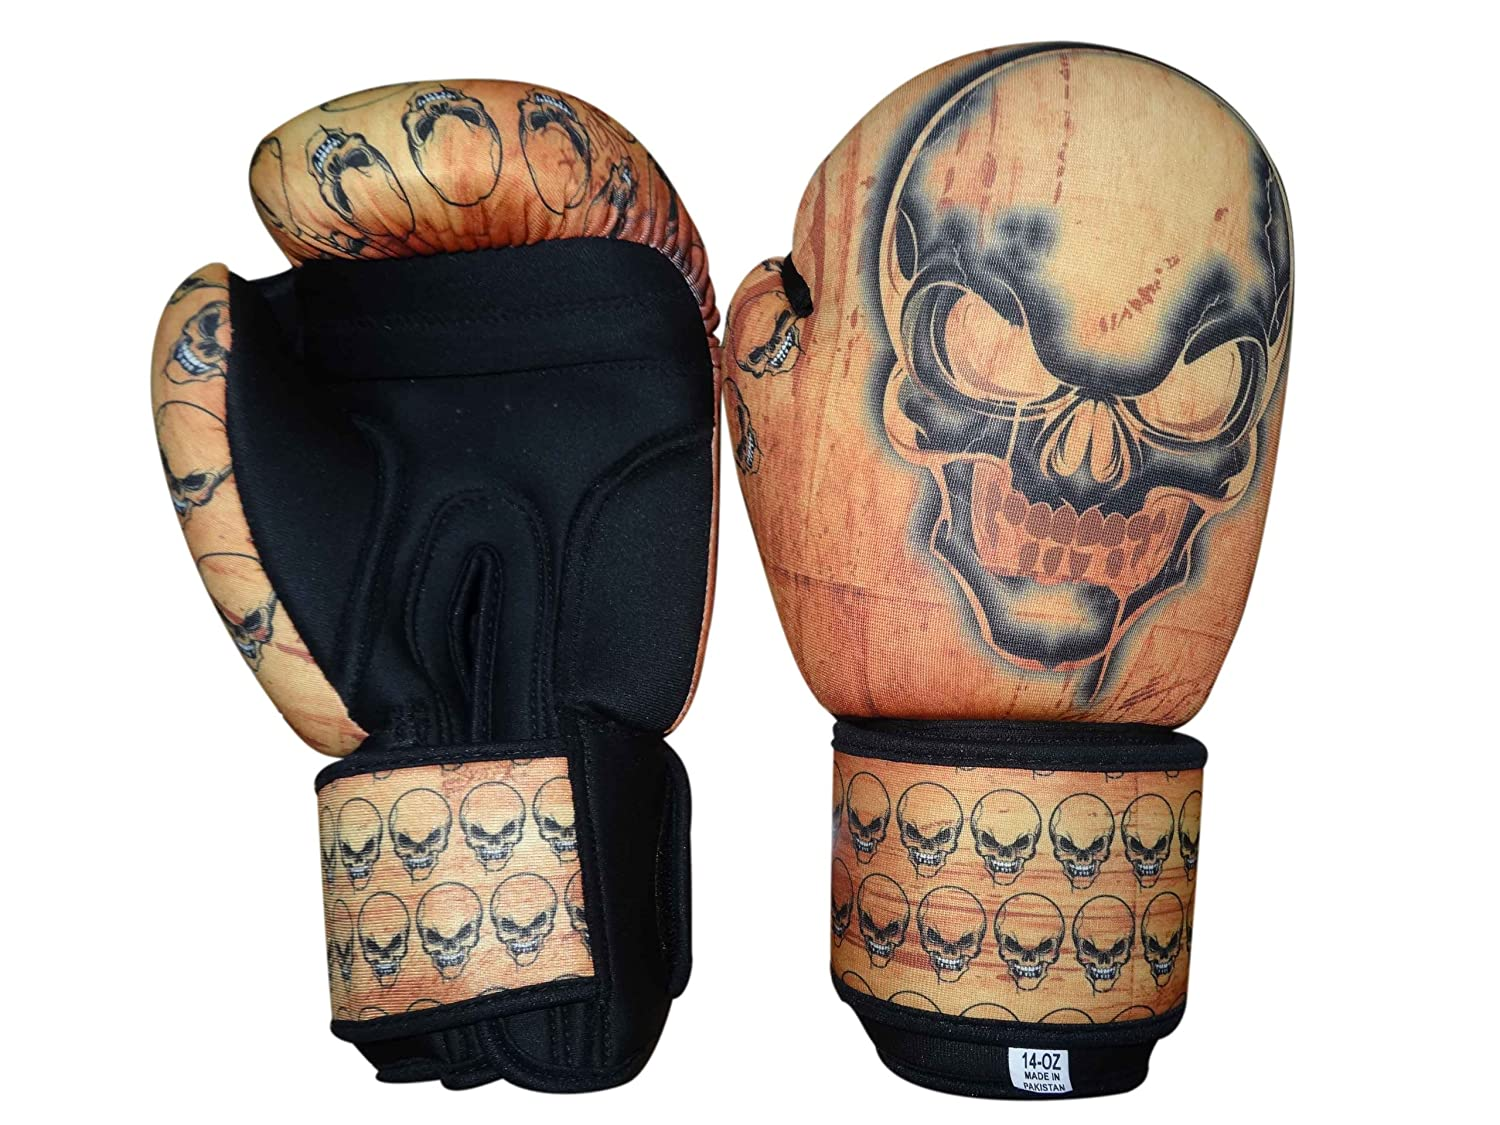 Woldorf USA Washable Boxing Bag Gloves withインプリントスカル12oz